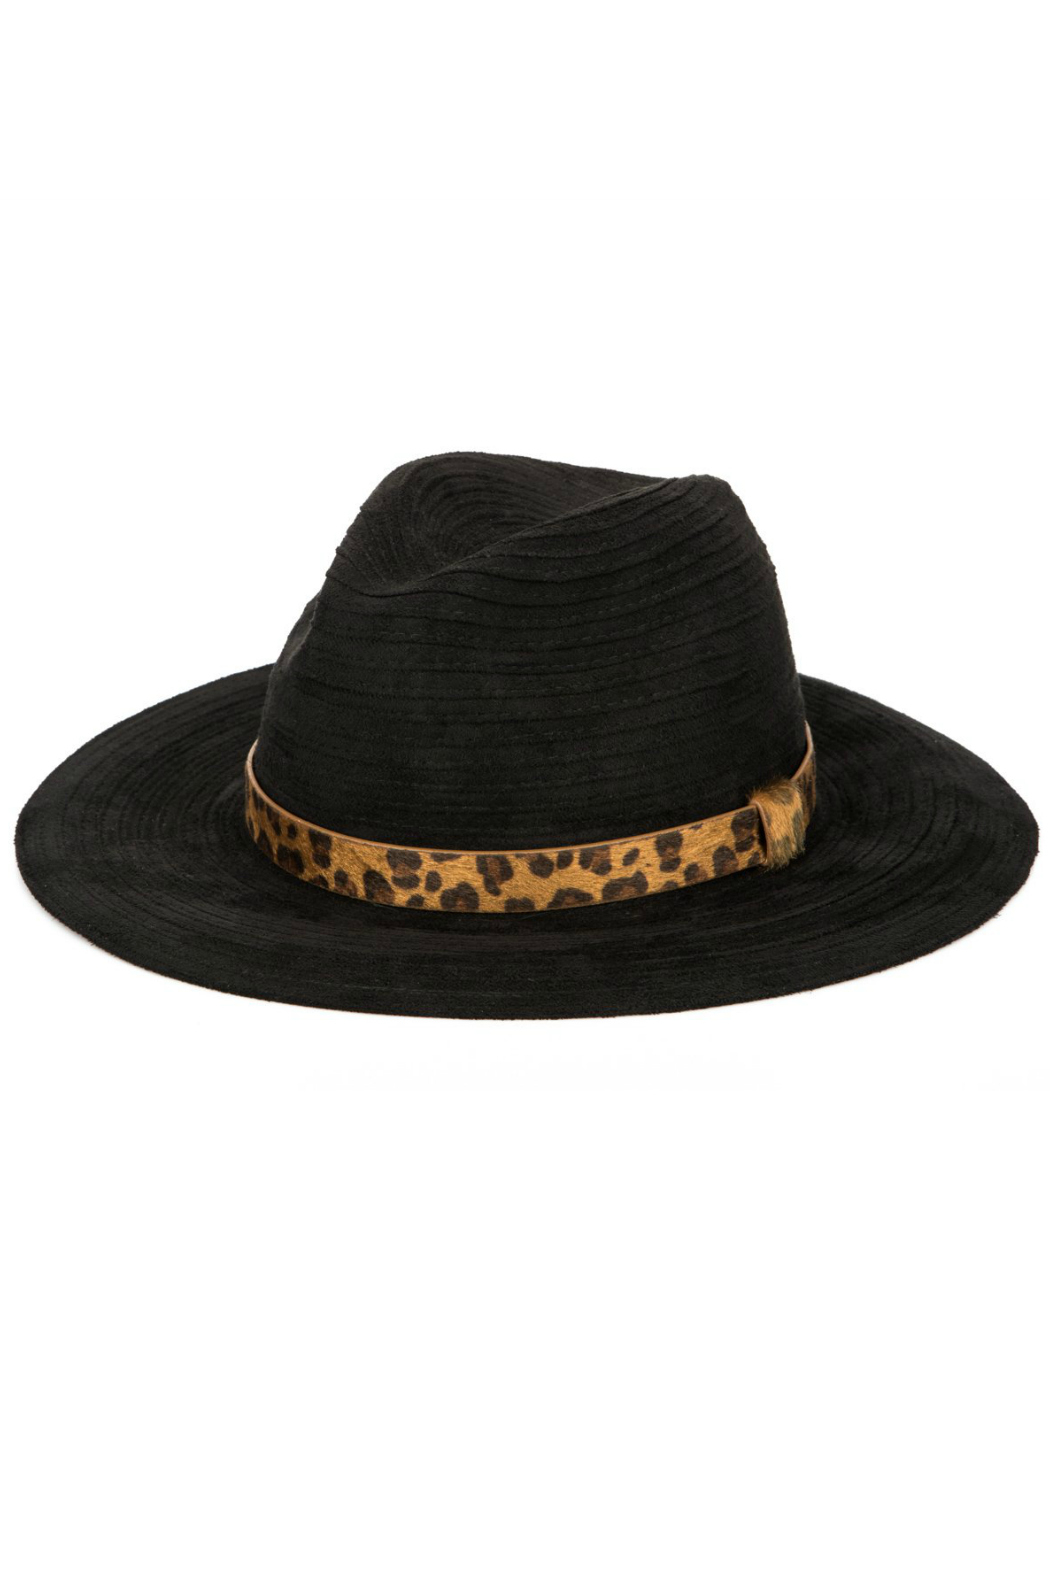 San Diego Hat Company Fedora With Leopard Band - Main Image